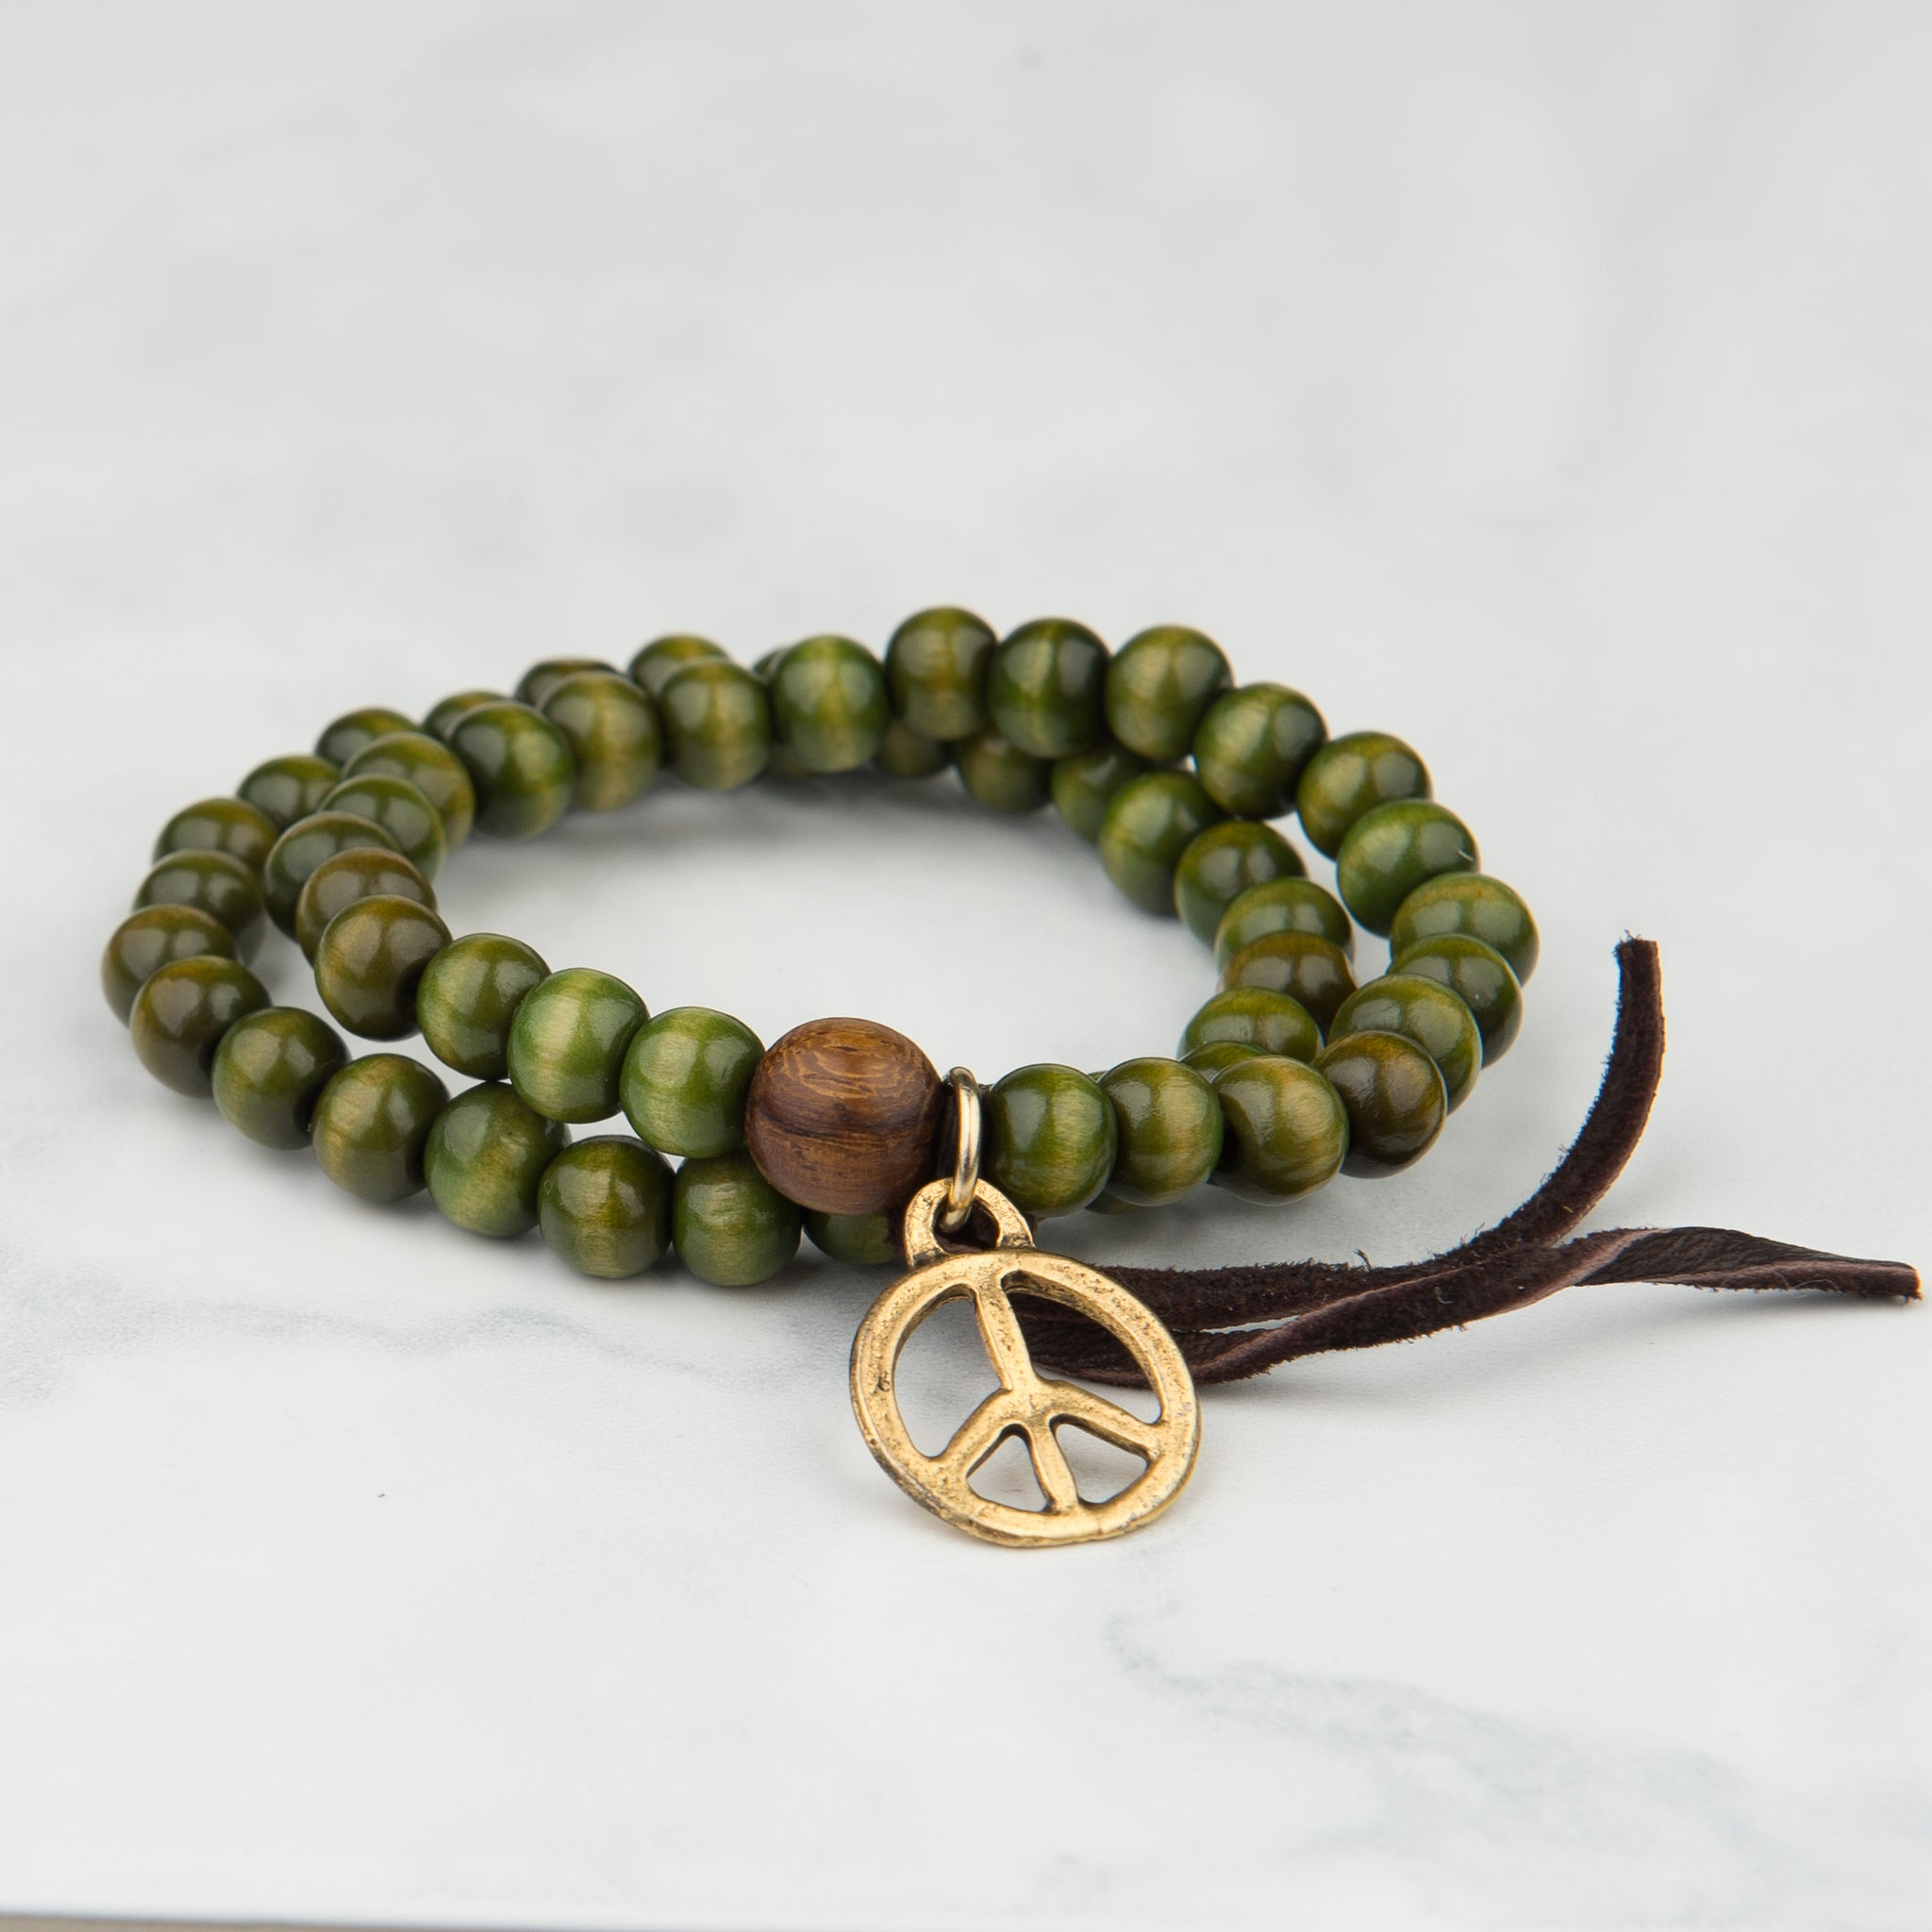 Green Peace Charm Wooden Bead Bracelet (7mm Beads)